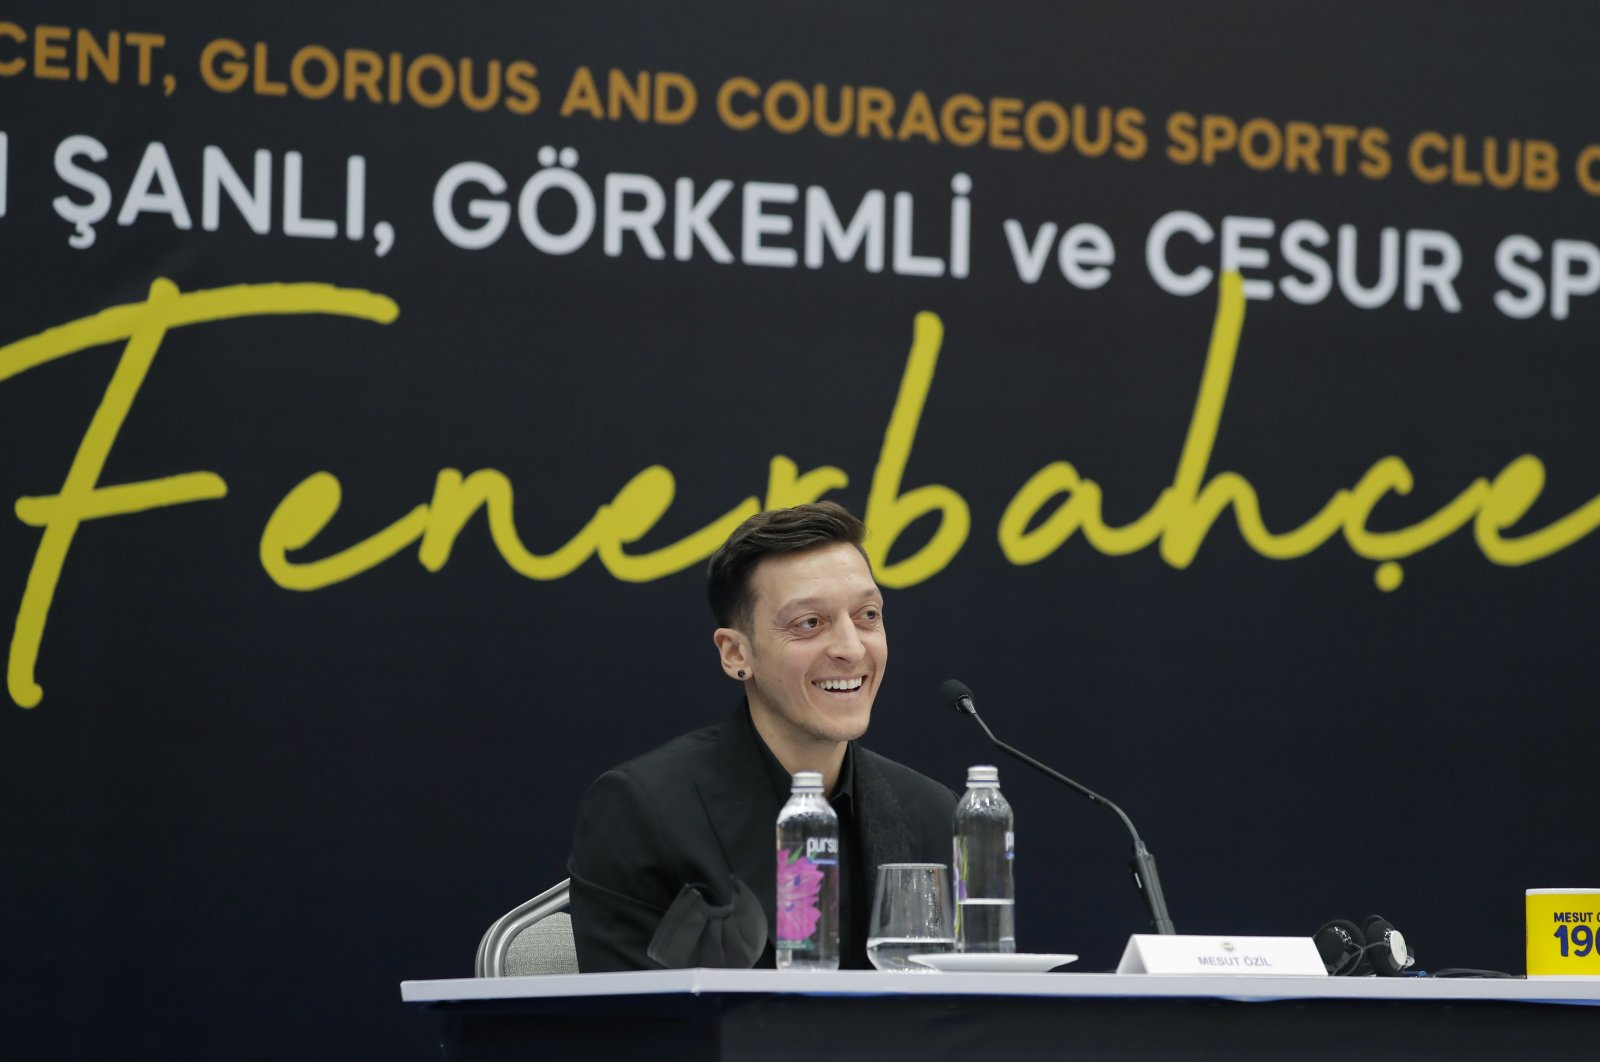 Mesut Özil speaks during a presentation and signing ceremony with Fenerbahçe football club, in Istanbul, Wednesday, Jan. 27, 2021. (AP Photo)